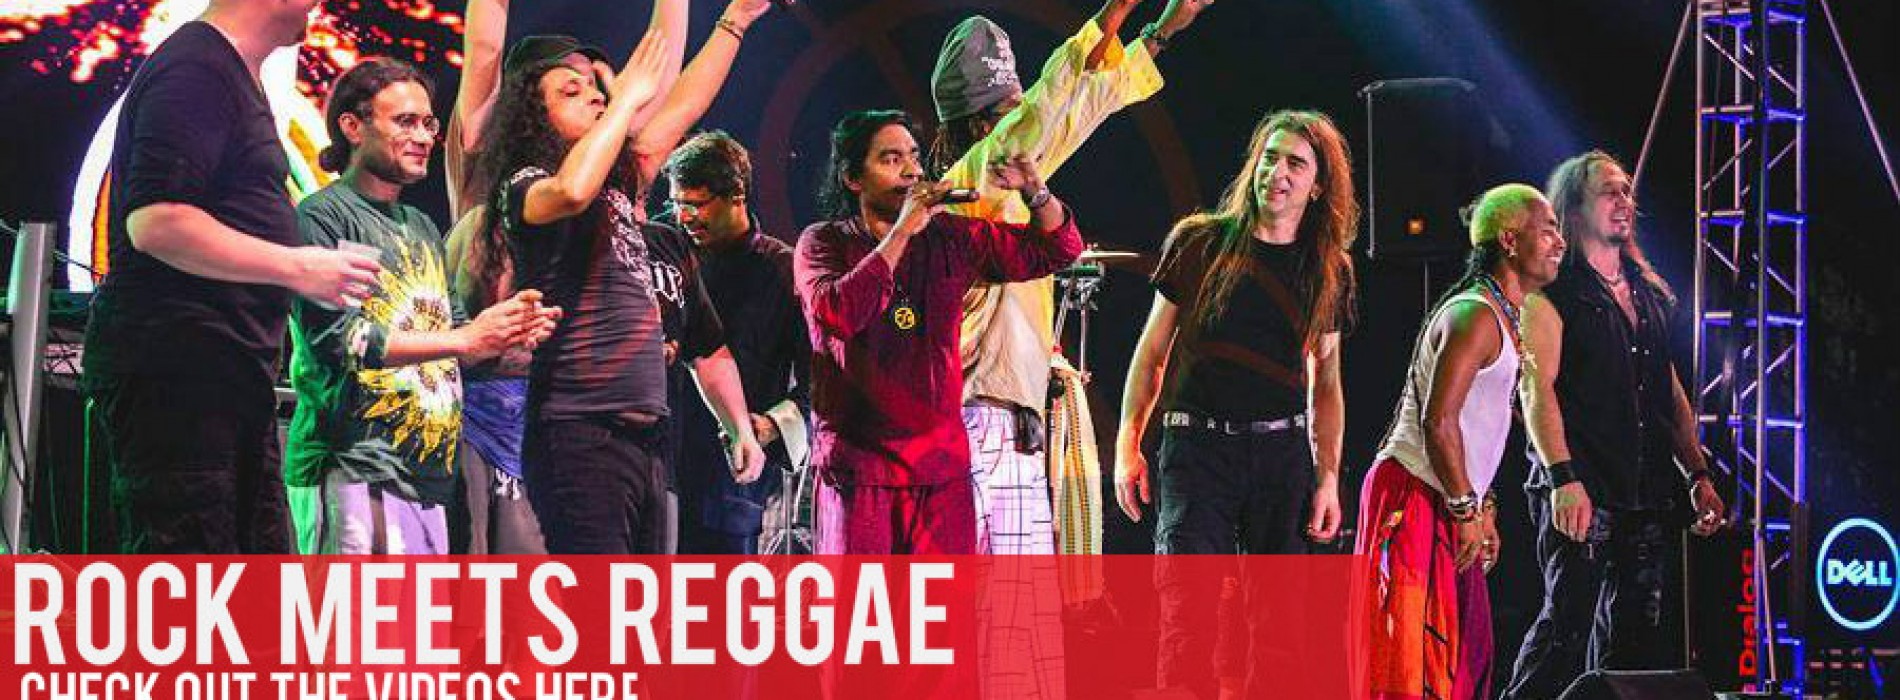 Rock Meets Reggae: A Few Awesome Moments